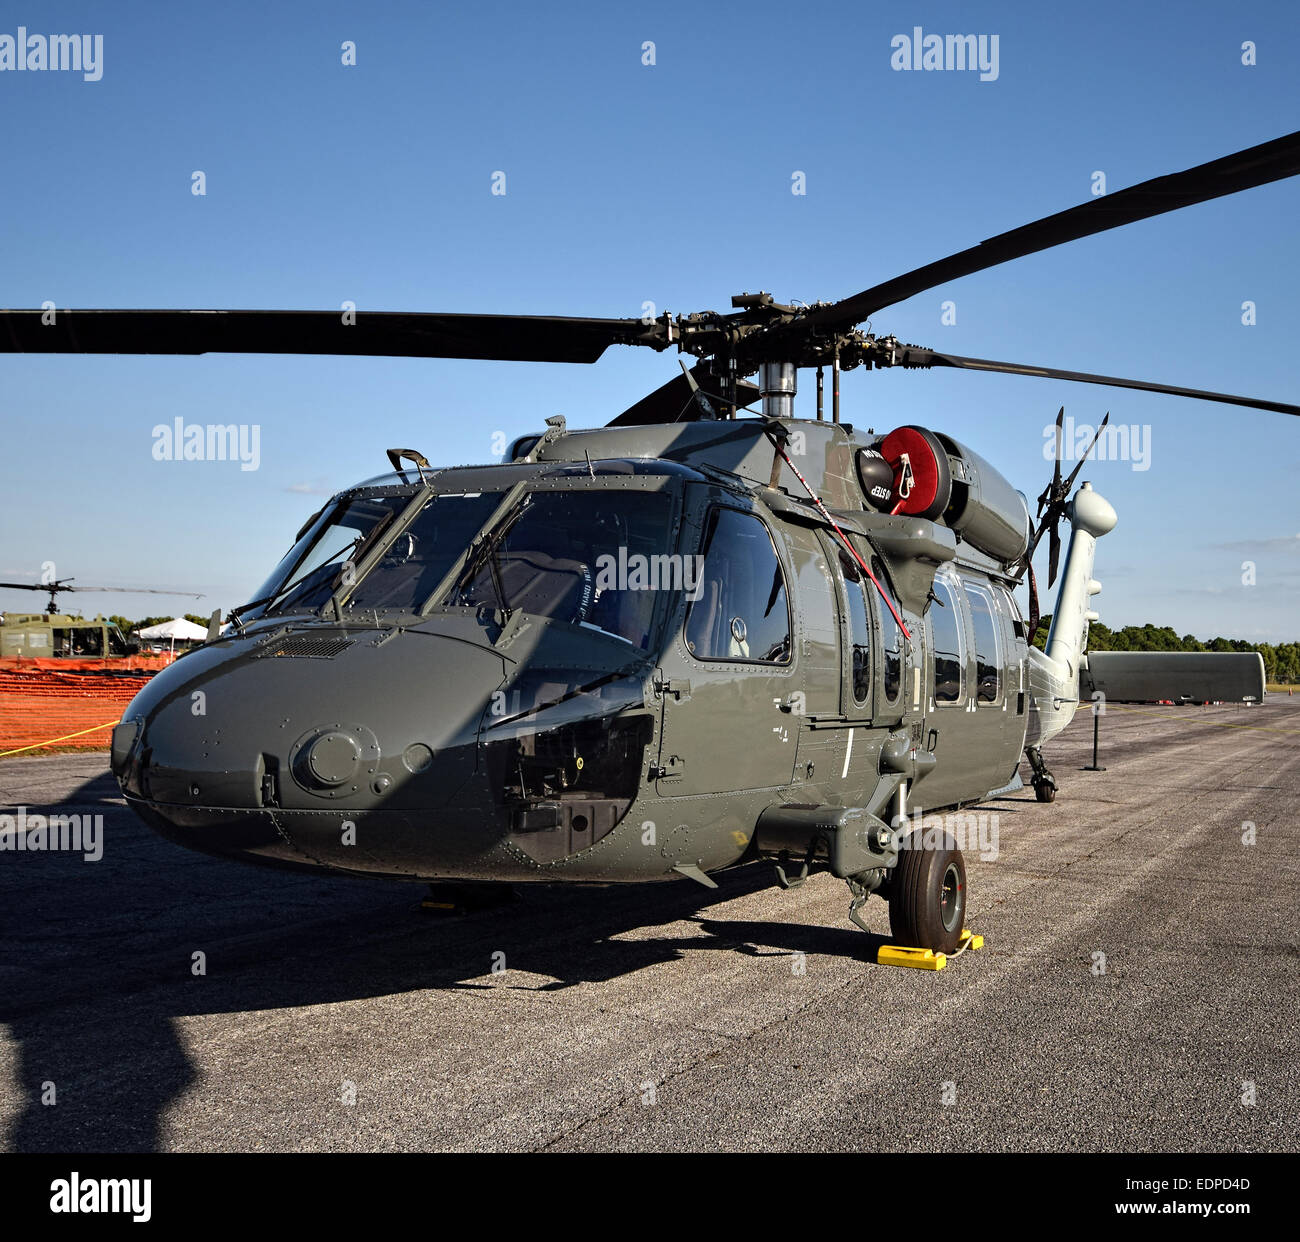 Modern military helicopter on the ground closeup - Stock Image